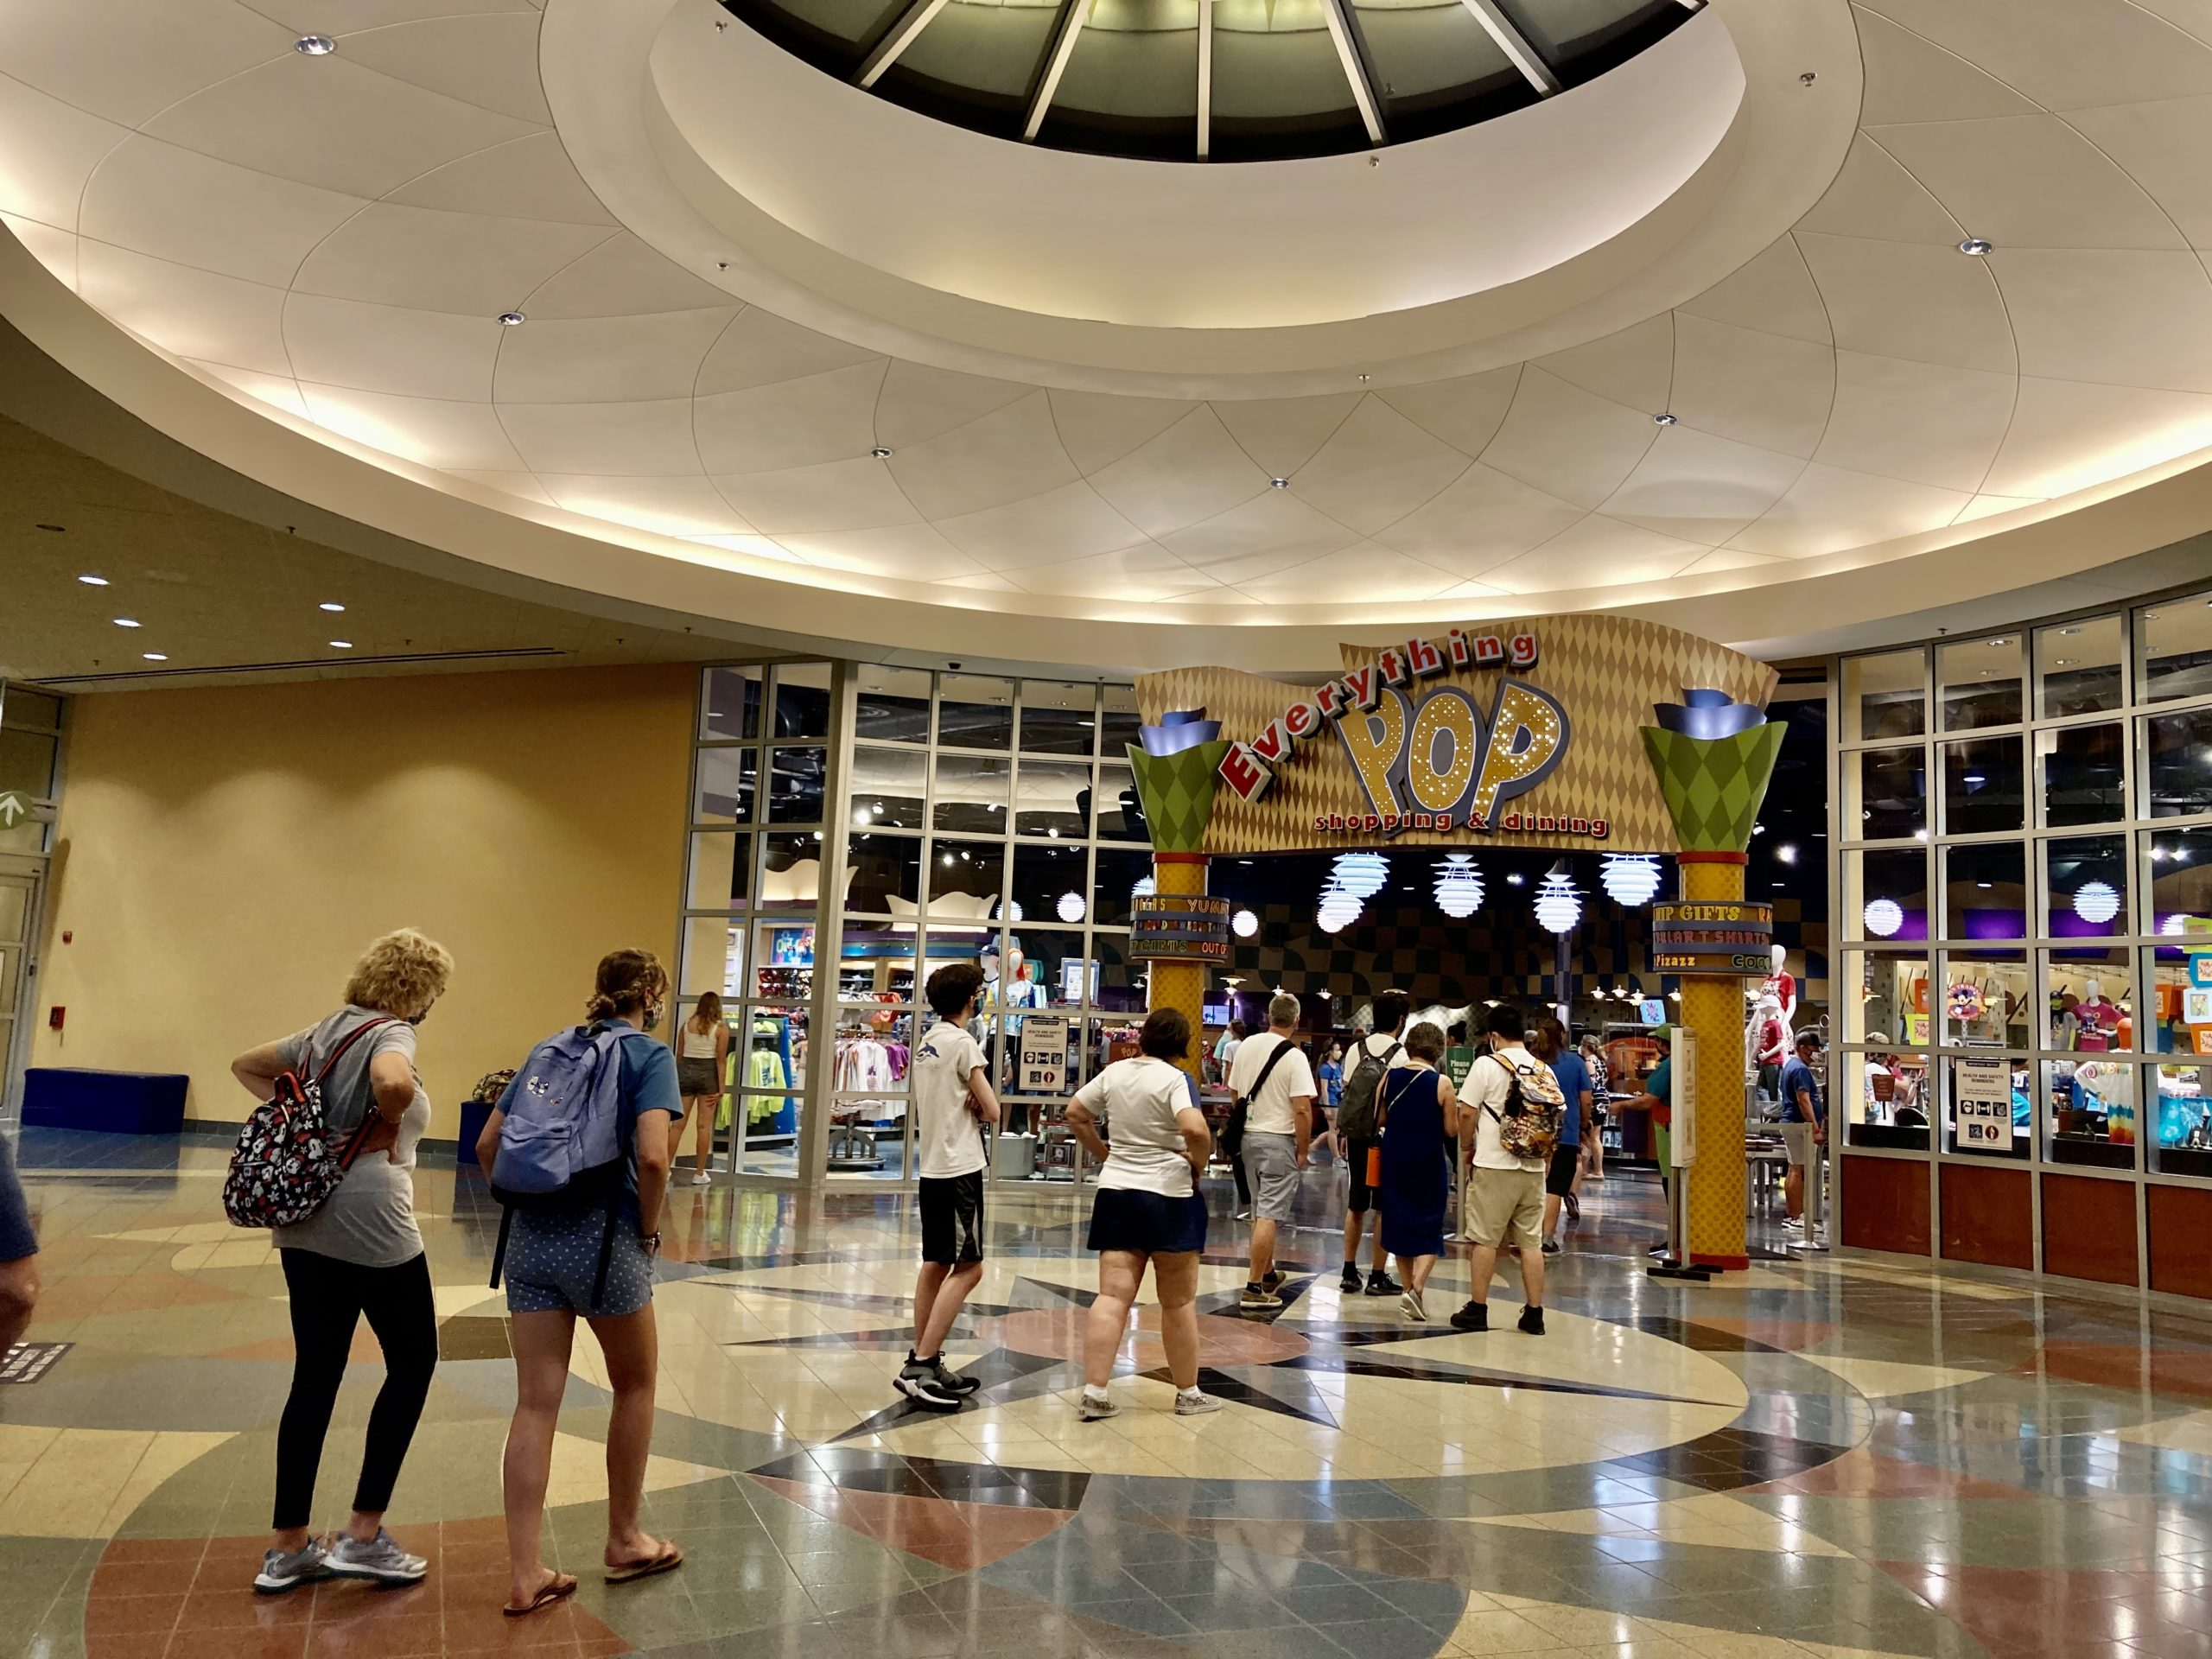 Photos: Long Lines, Mobile Order Only, And Temporary Drink Refill System In Everything Pop Shopping & Dining At The Newly-reopened Disney's Pop Century Resort photo